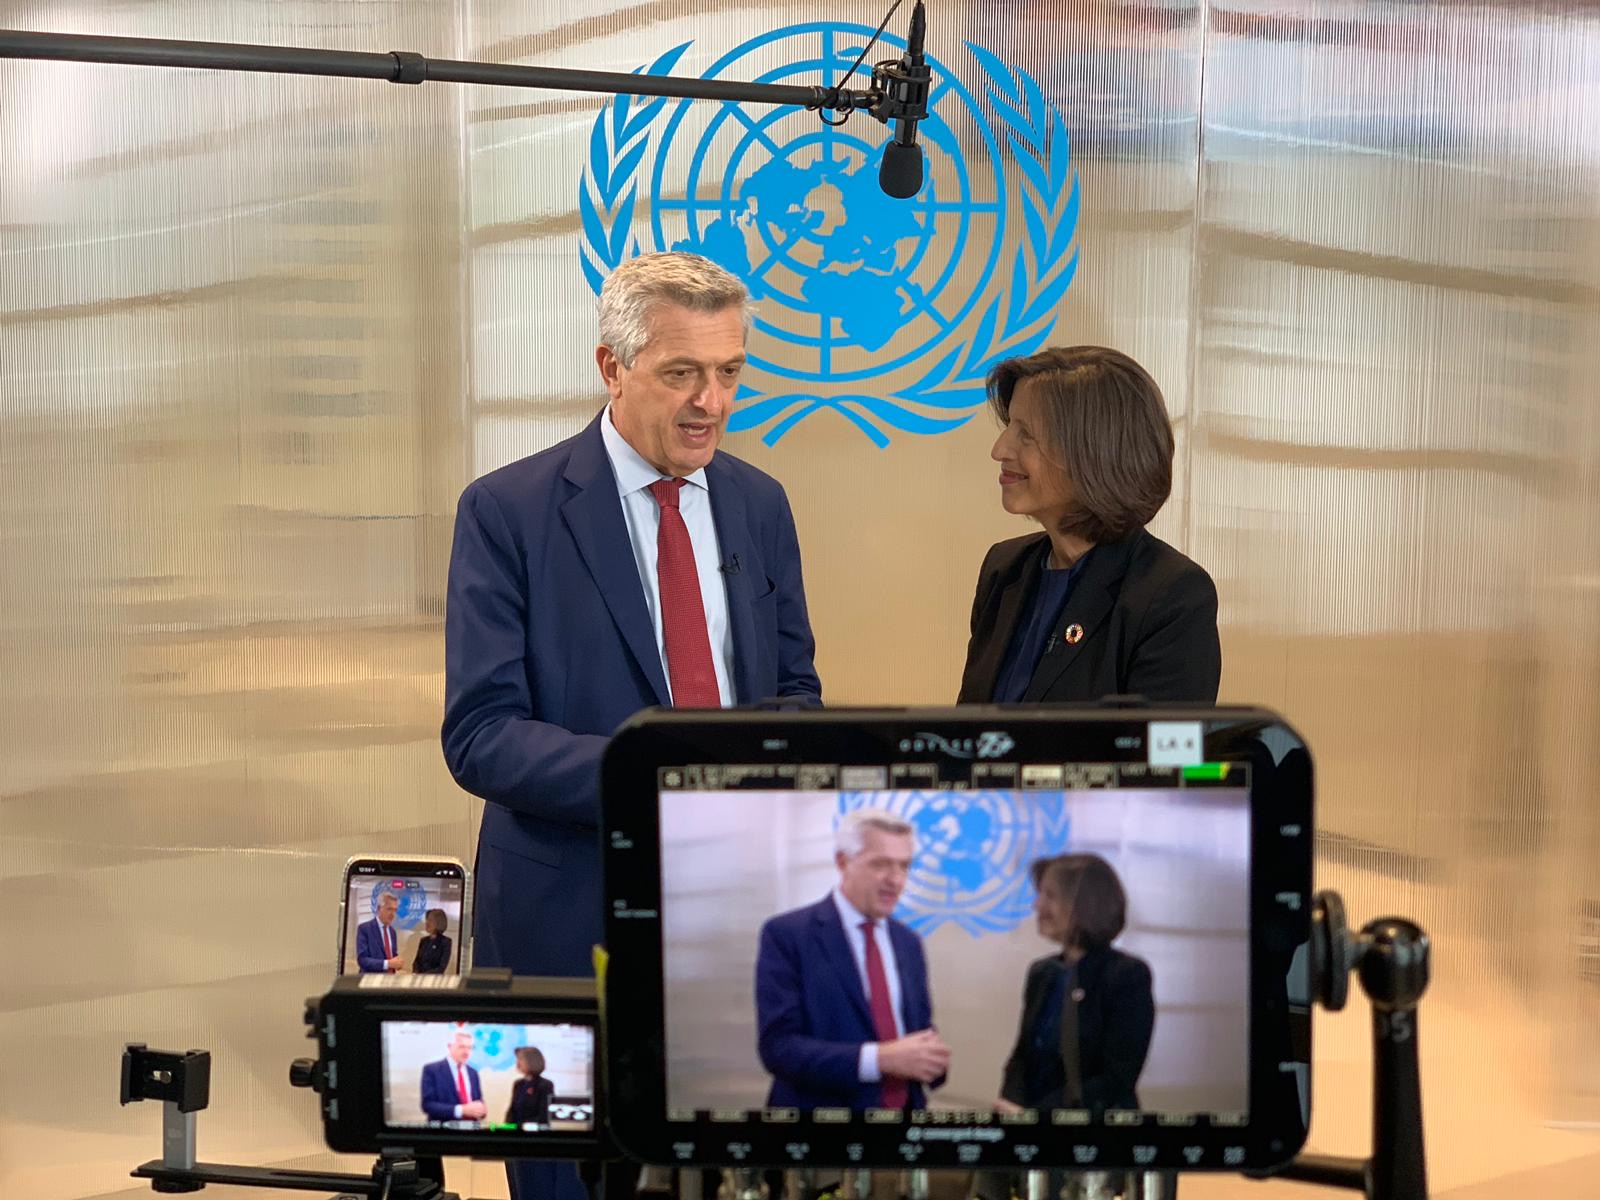 Cameras record a UN official interviewing another.